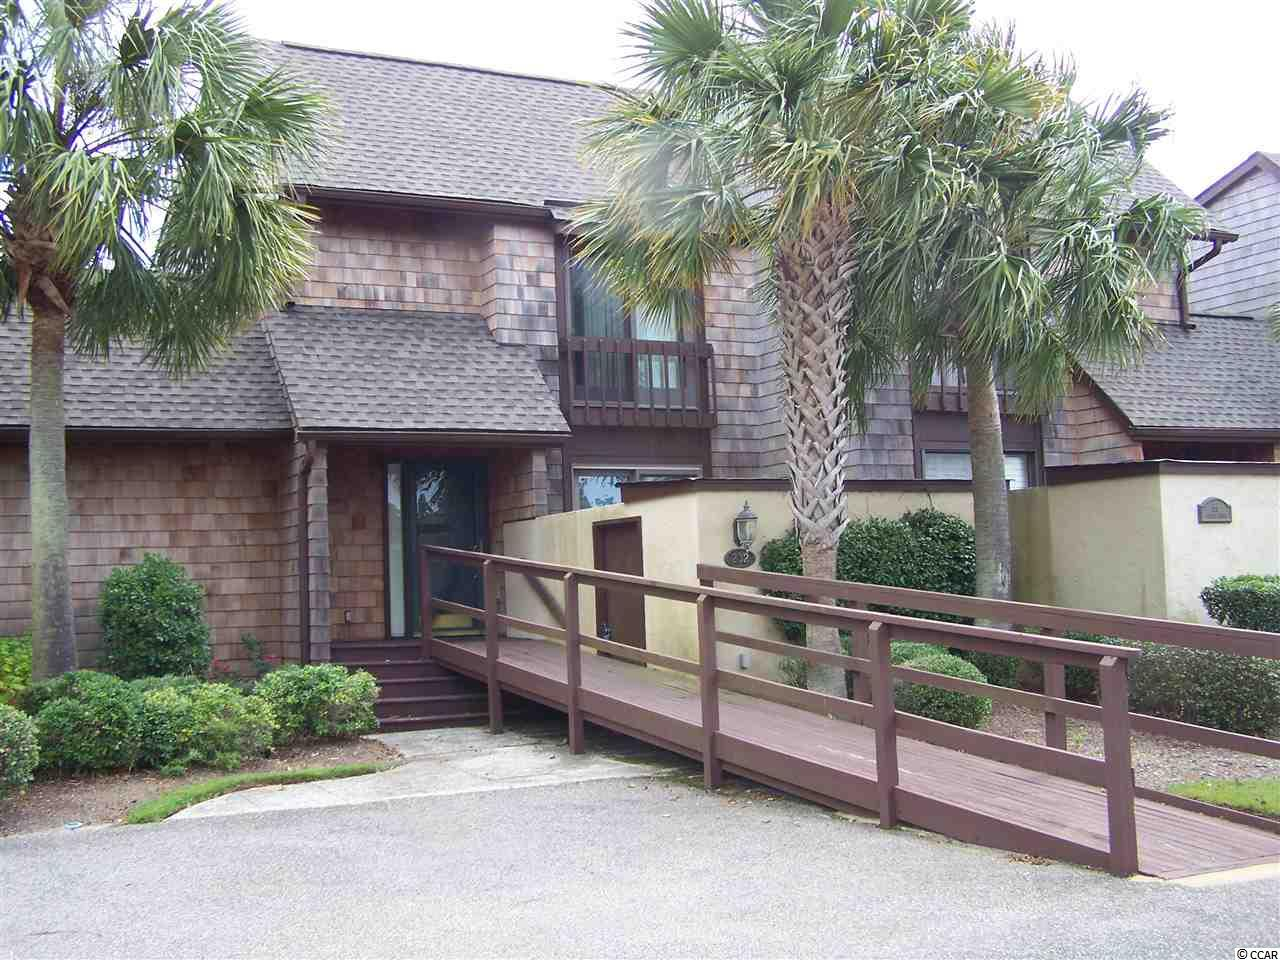 Always wanted your little piece of paradise, welcome to Belle Isle Yacht Club. Beautiful 3 bedroom 2 bath condo in historic Belle Isle Yacht Club right on Winyah Bay with an unobstructed view of the Waccamaw River Bridge to Pawleys Island. In the evening watch the sun reflect off the historic Georgetown Light House or just sit on the deck and count the boats as they travel up and down the Intracoastal Waterway. Just a short drive to historic Georgetown with its quaint shops and wonderful restaurants    This unit has been updated with granite and a open floor plan with a downstairs bedroom suite with a walk-in shower. Additional upgrades include a new roof and cedar siding.Sliding glass doors across the back of the unit give you a full view of the beautiful bay. Amenities include a private gated beach house on Pawleys Island, 2 pools, tennis and marina.